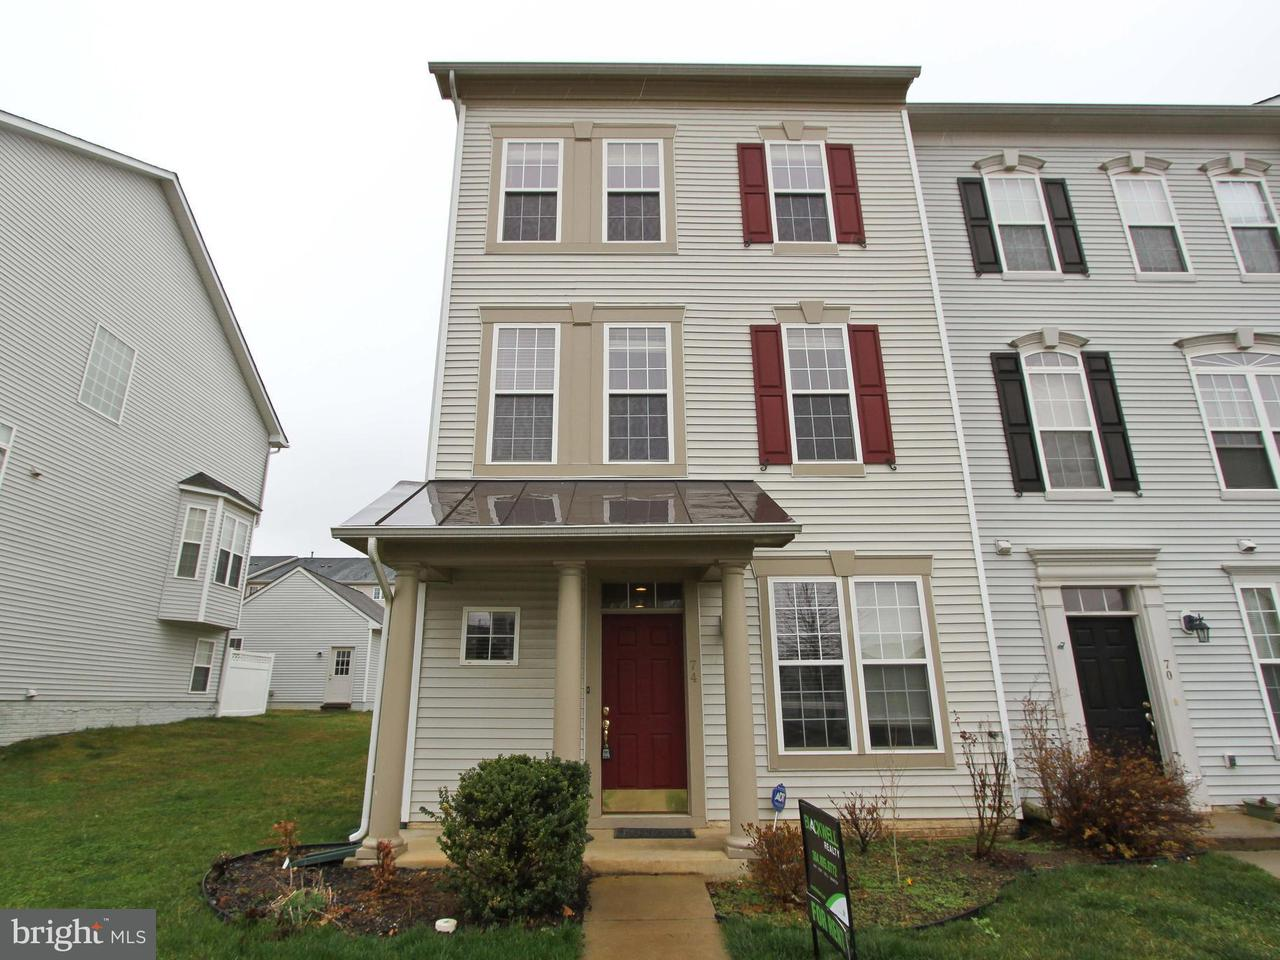 Other Residential for Rent at 74 Davis St Charles Town, West Virginia 25414 United States